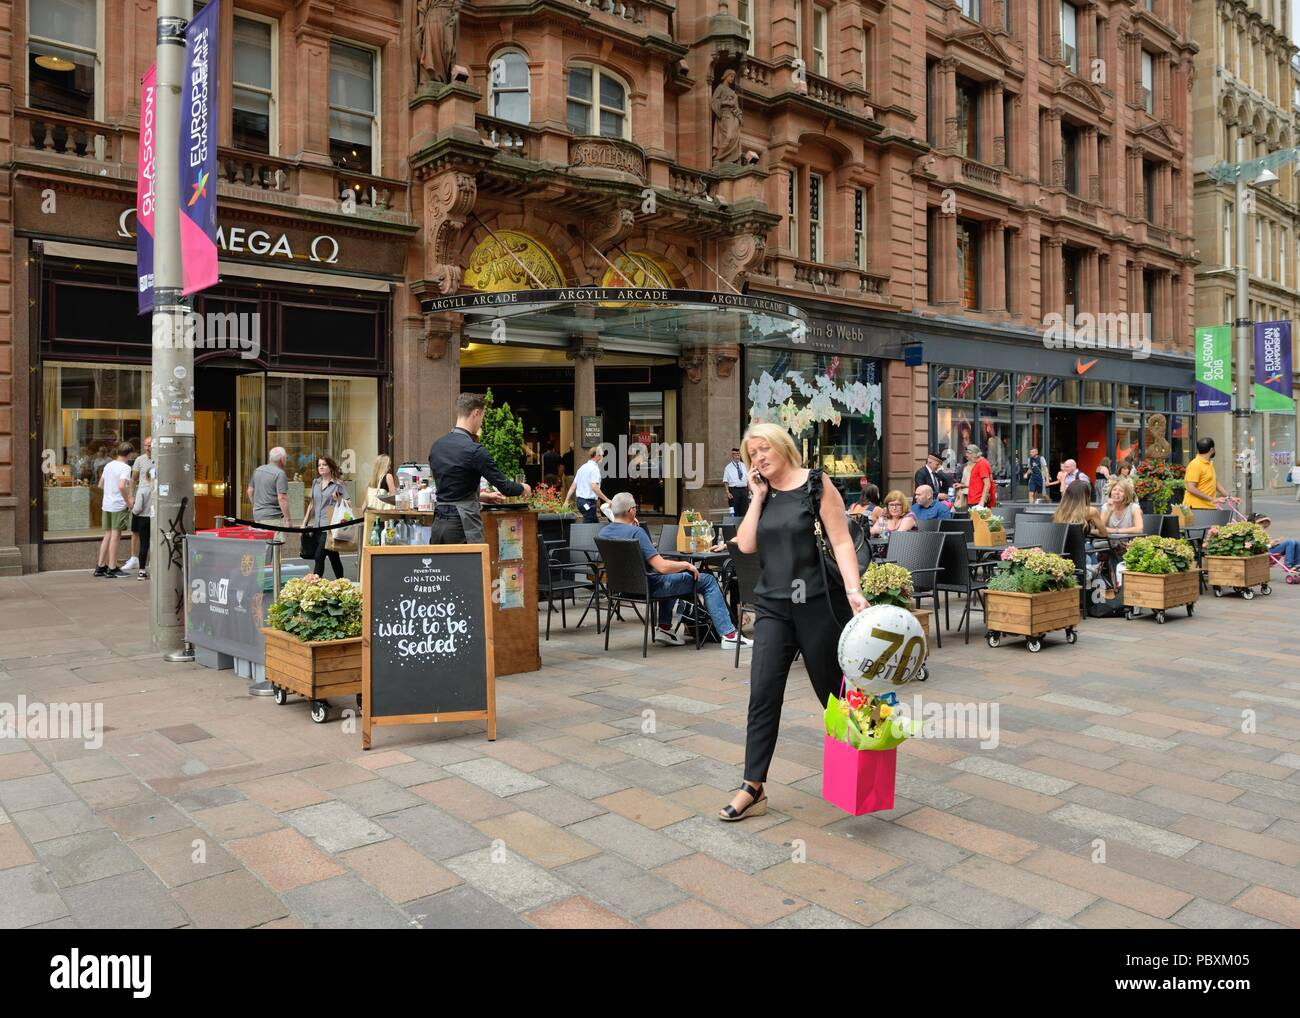 A woman on mobile phone shopping for birthday presents outside Argyll Chambers on Buchanan St. pedestrian precinct, Glasgow city centre, Scotland, UK - Stock Image